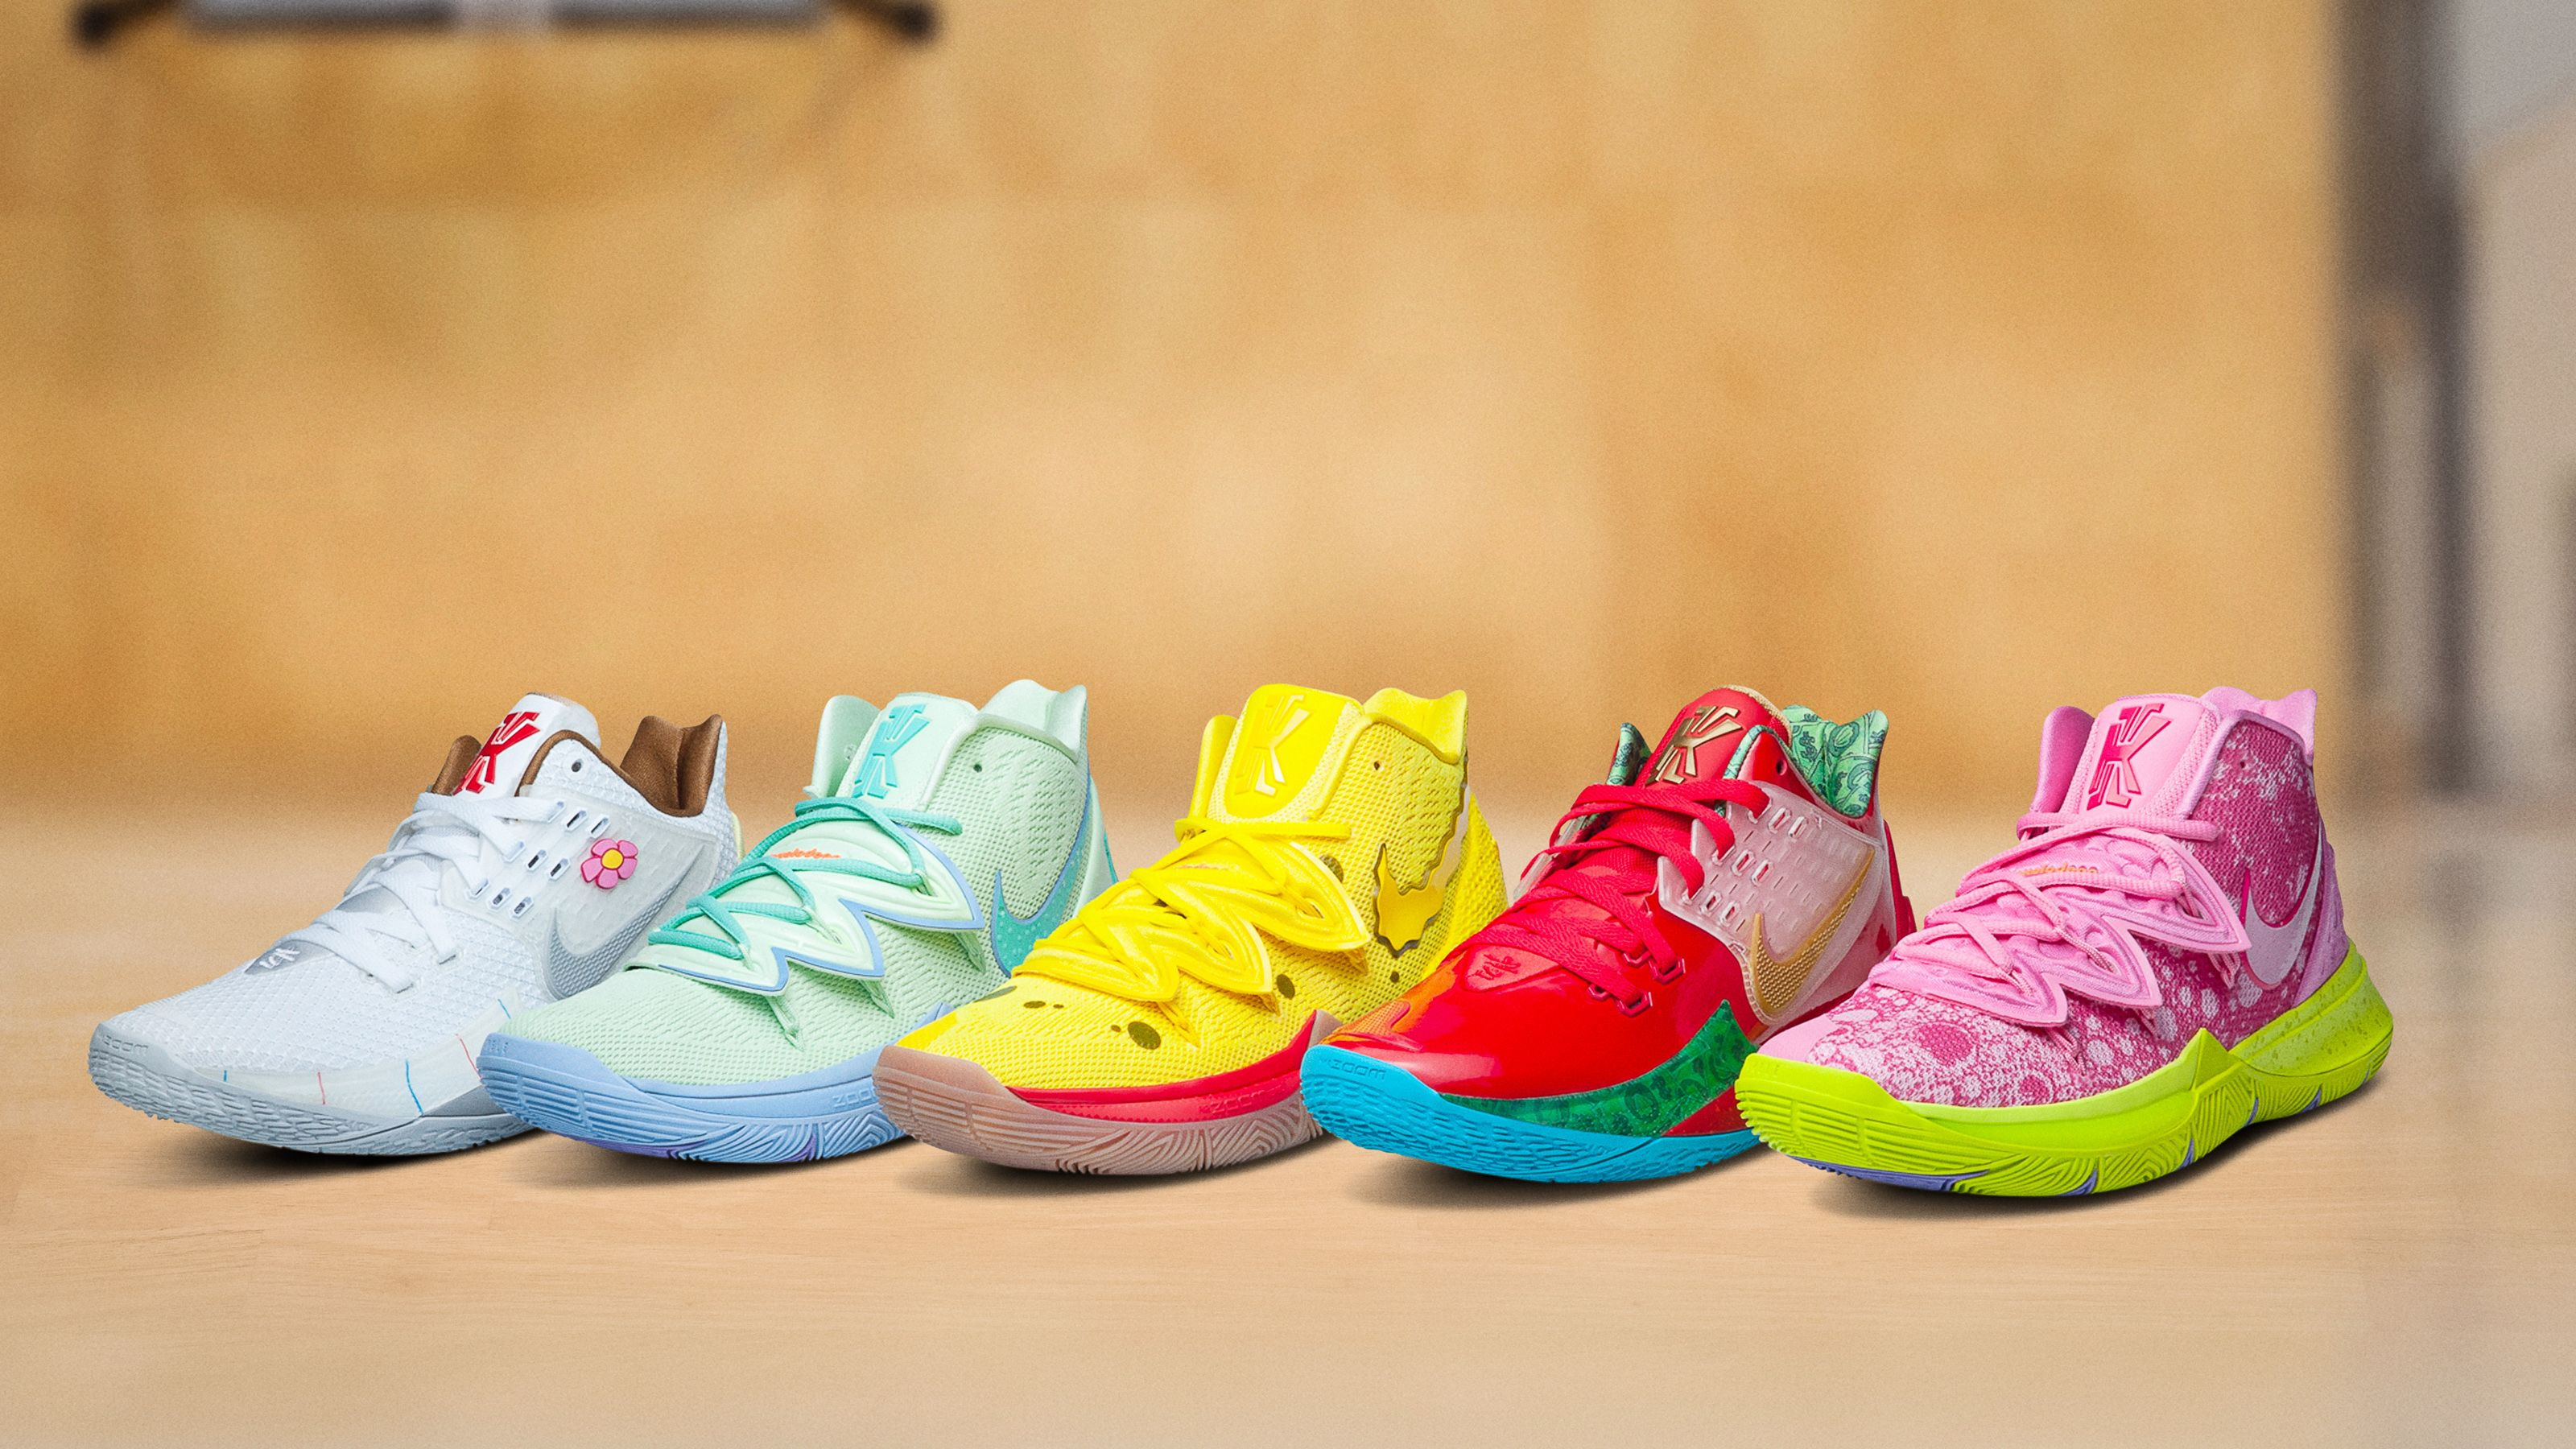 aac26bcc8ad Nike's New SpongeBob x Kyrie Irving Collaboration Will Have You ...